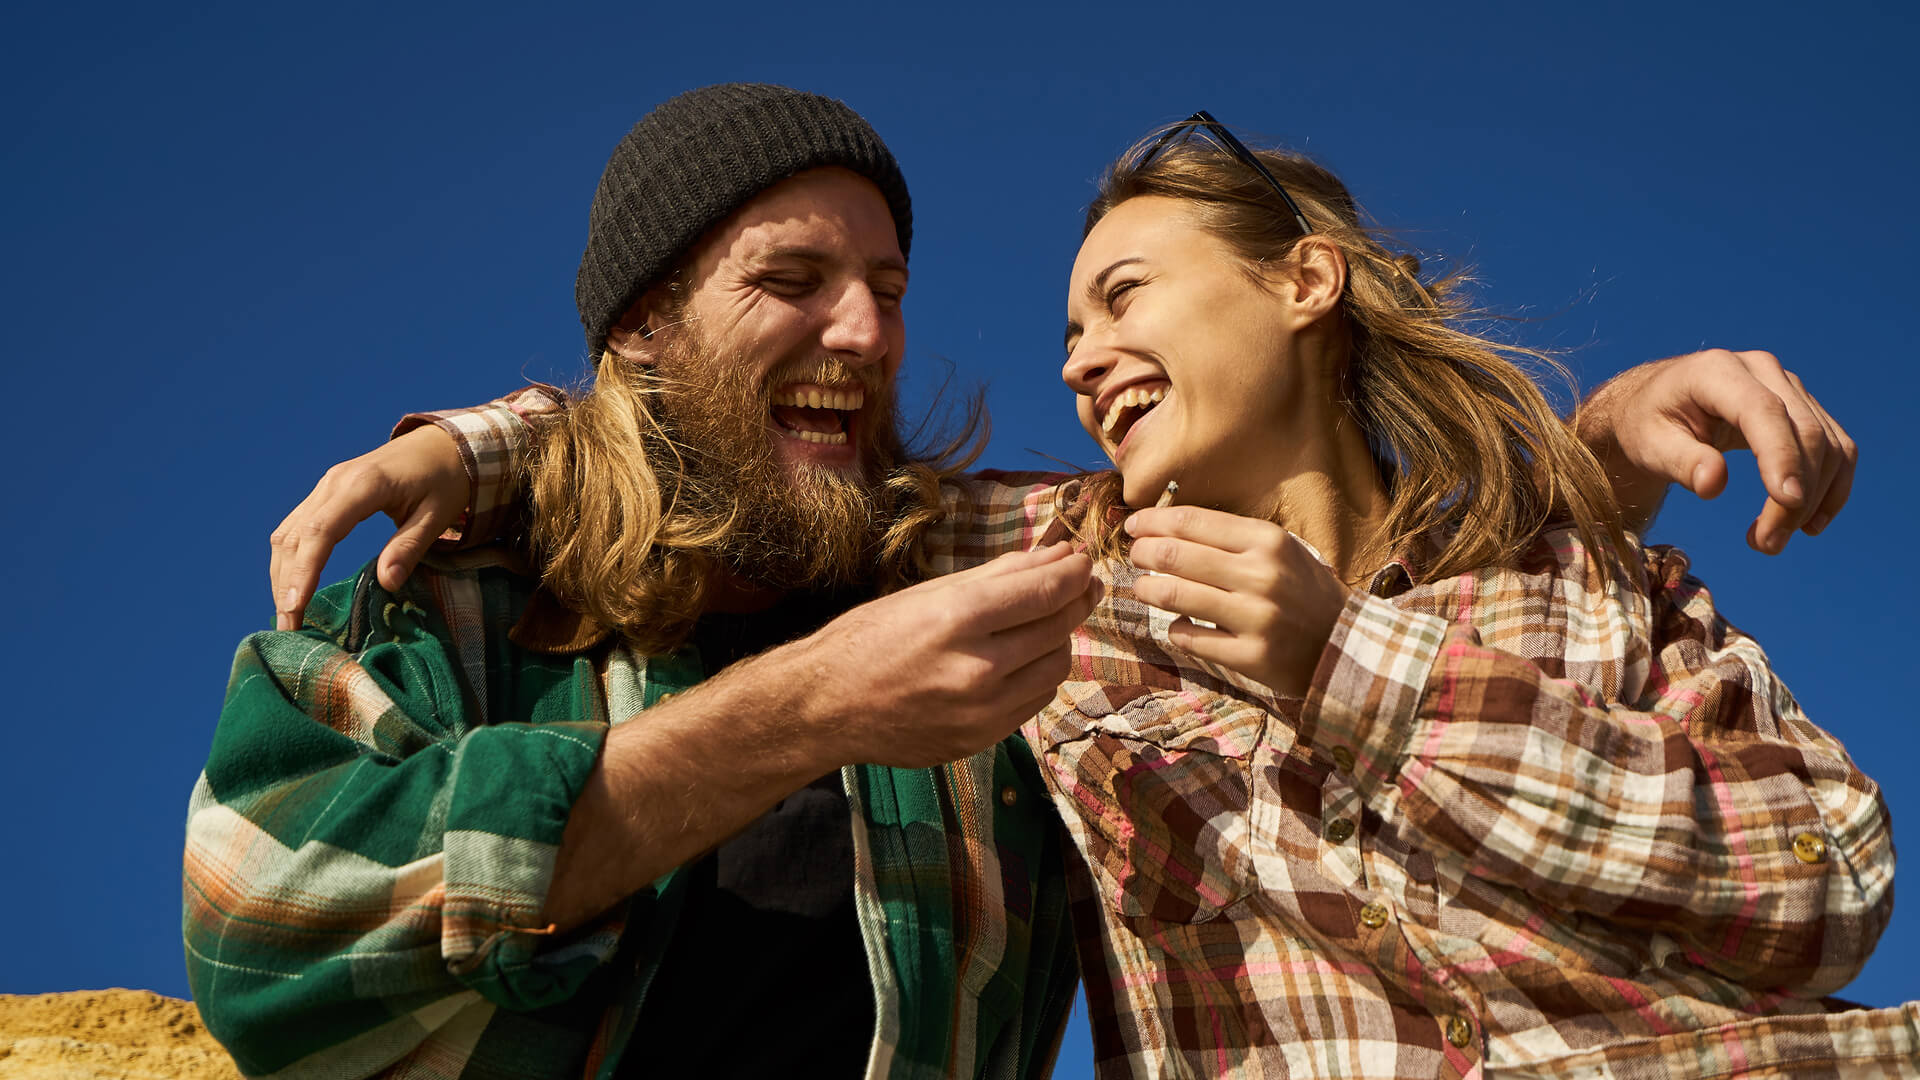 A hipster coupler laughing and passing a joint while hugging